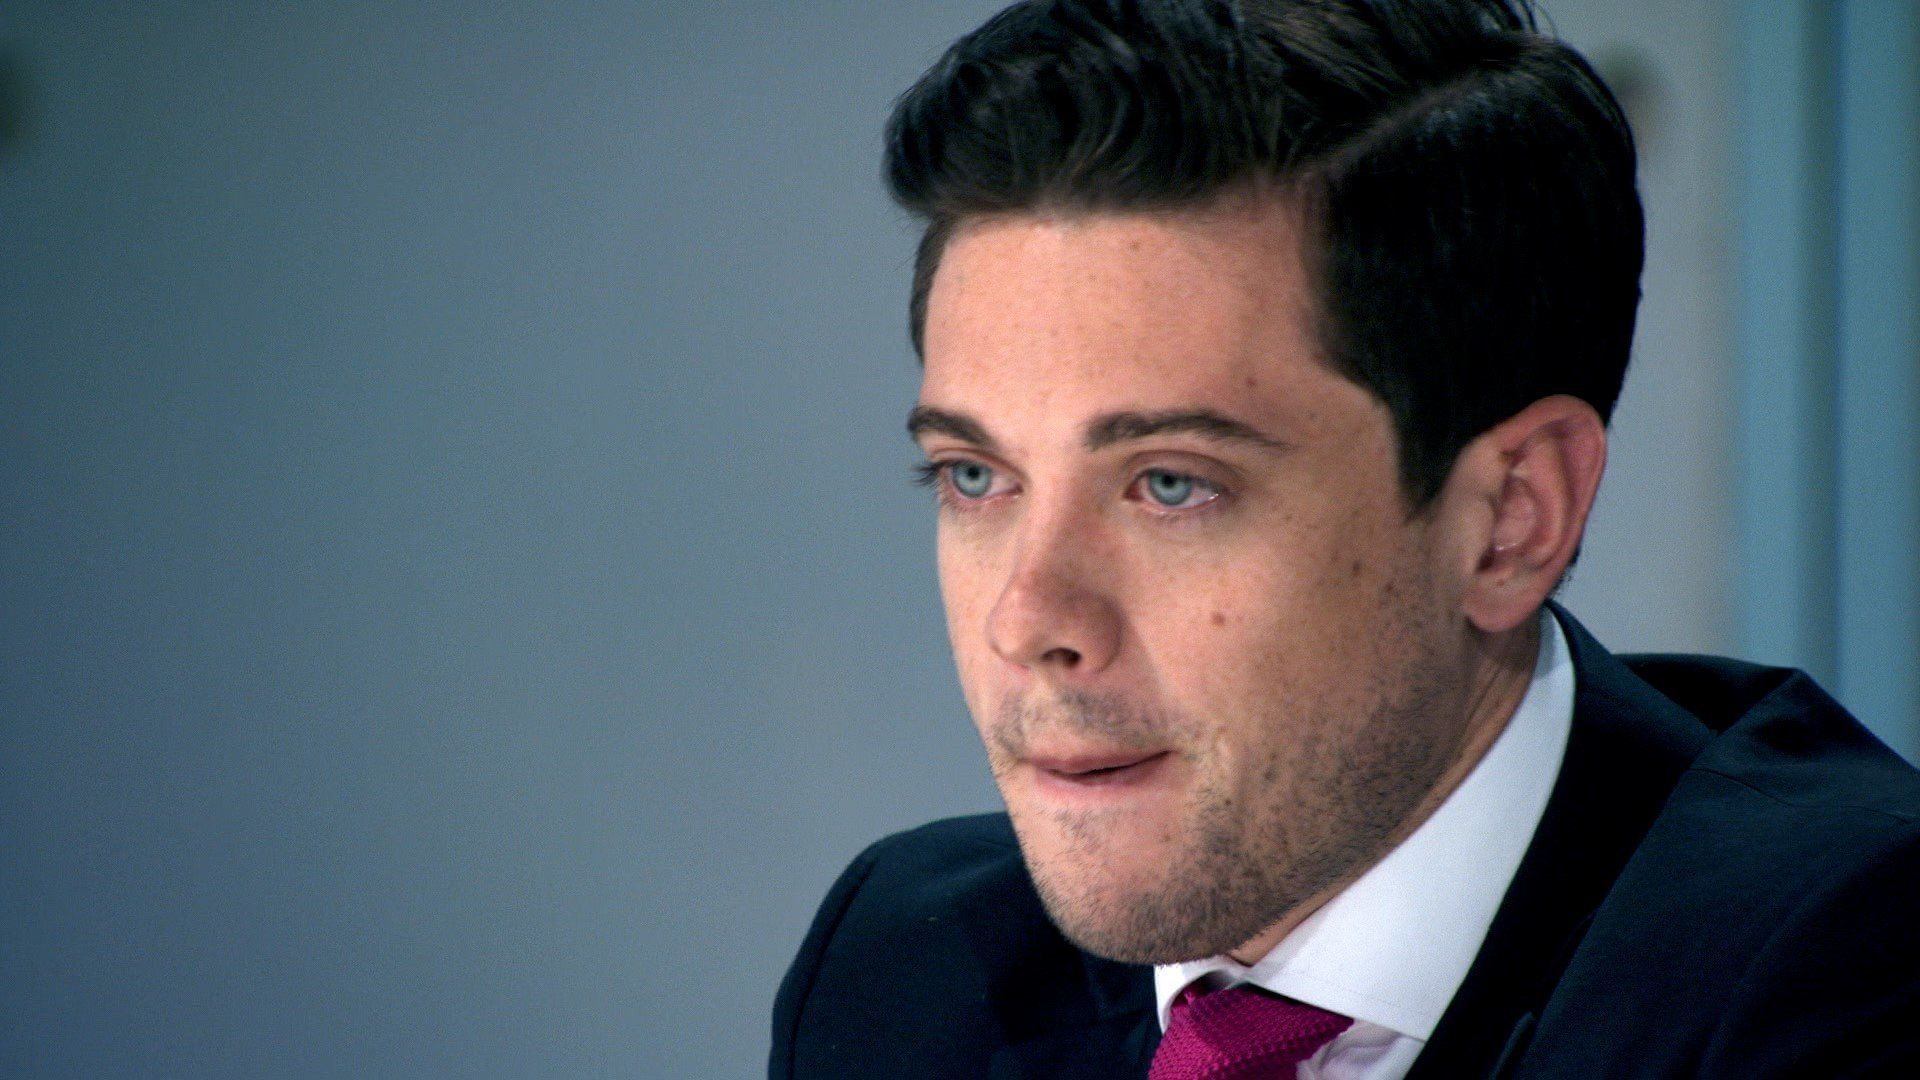 This 'Apprentice' Loser Sounds Pretty Calm About Missing Out On